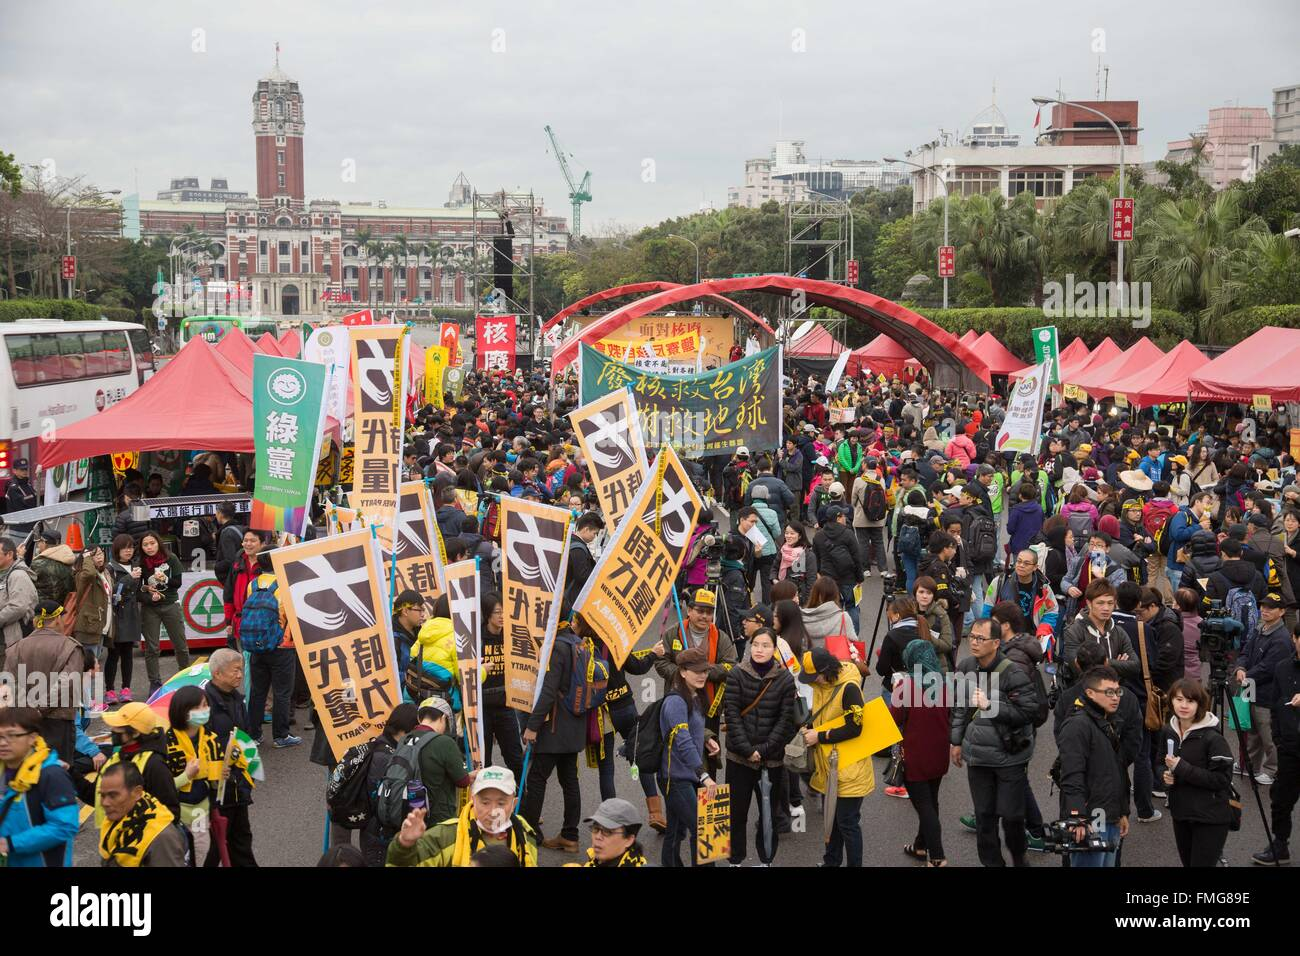 Taipei, Taiwan. 12th Mar, 2016. Activists and civic groups took to the streets for an annual anti-nuclear rally. - Stock Image